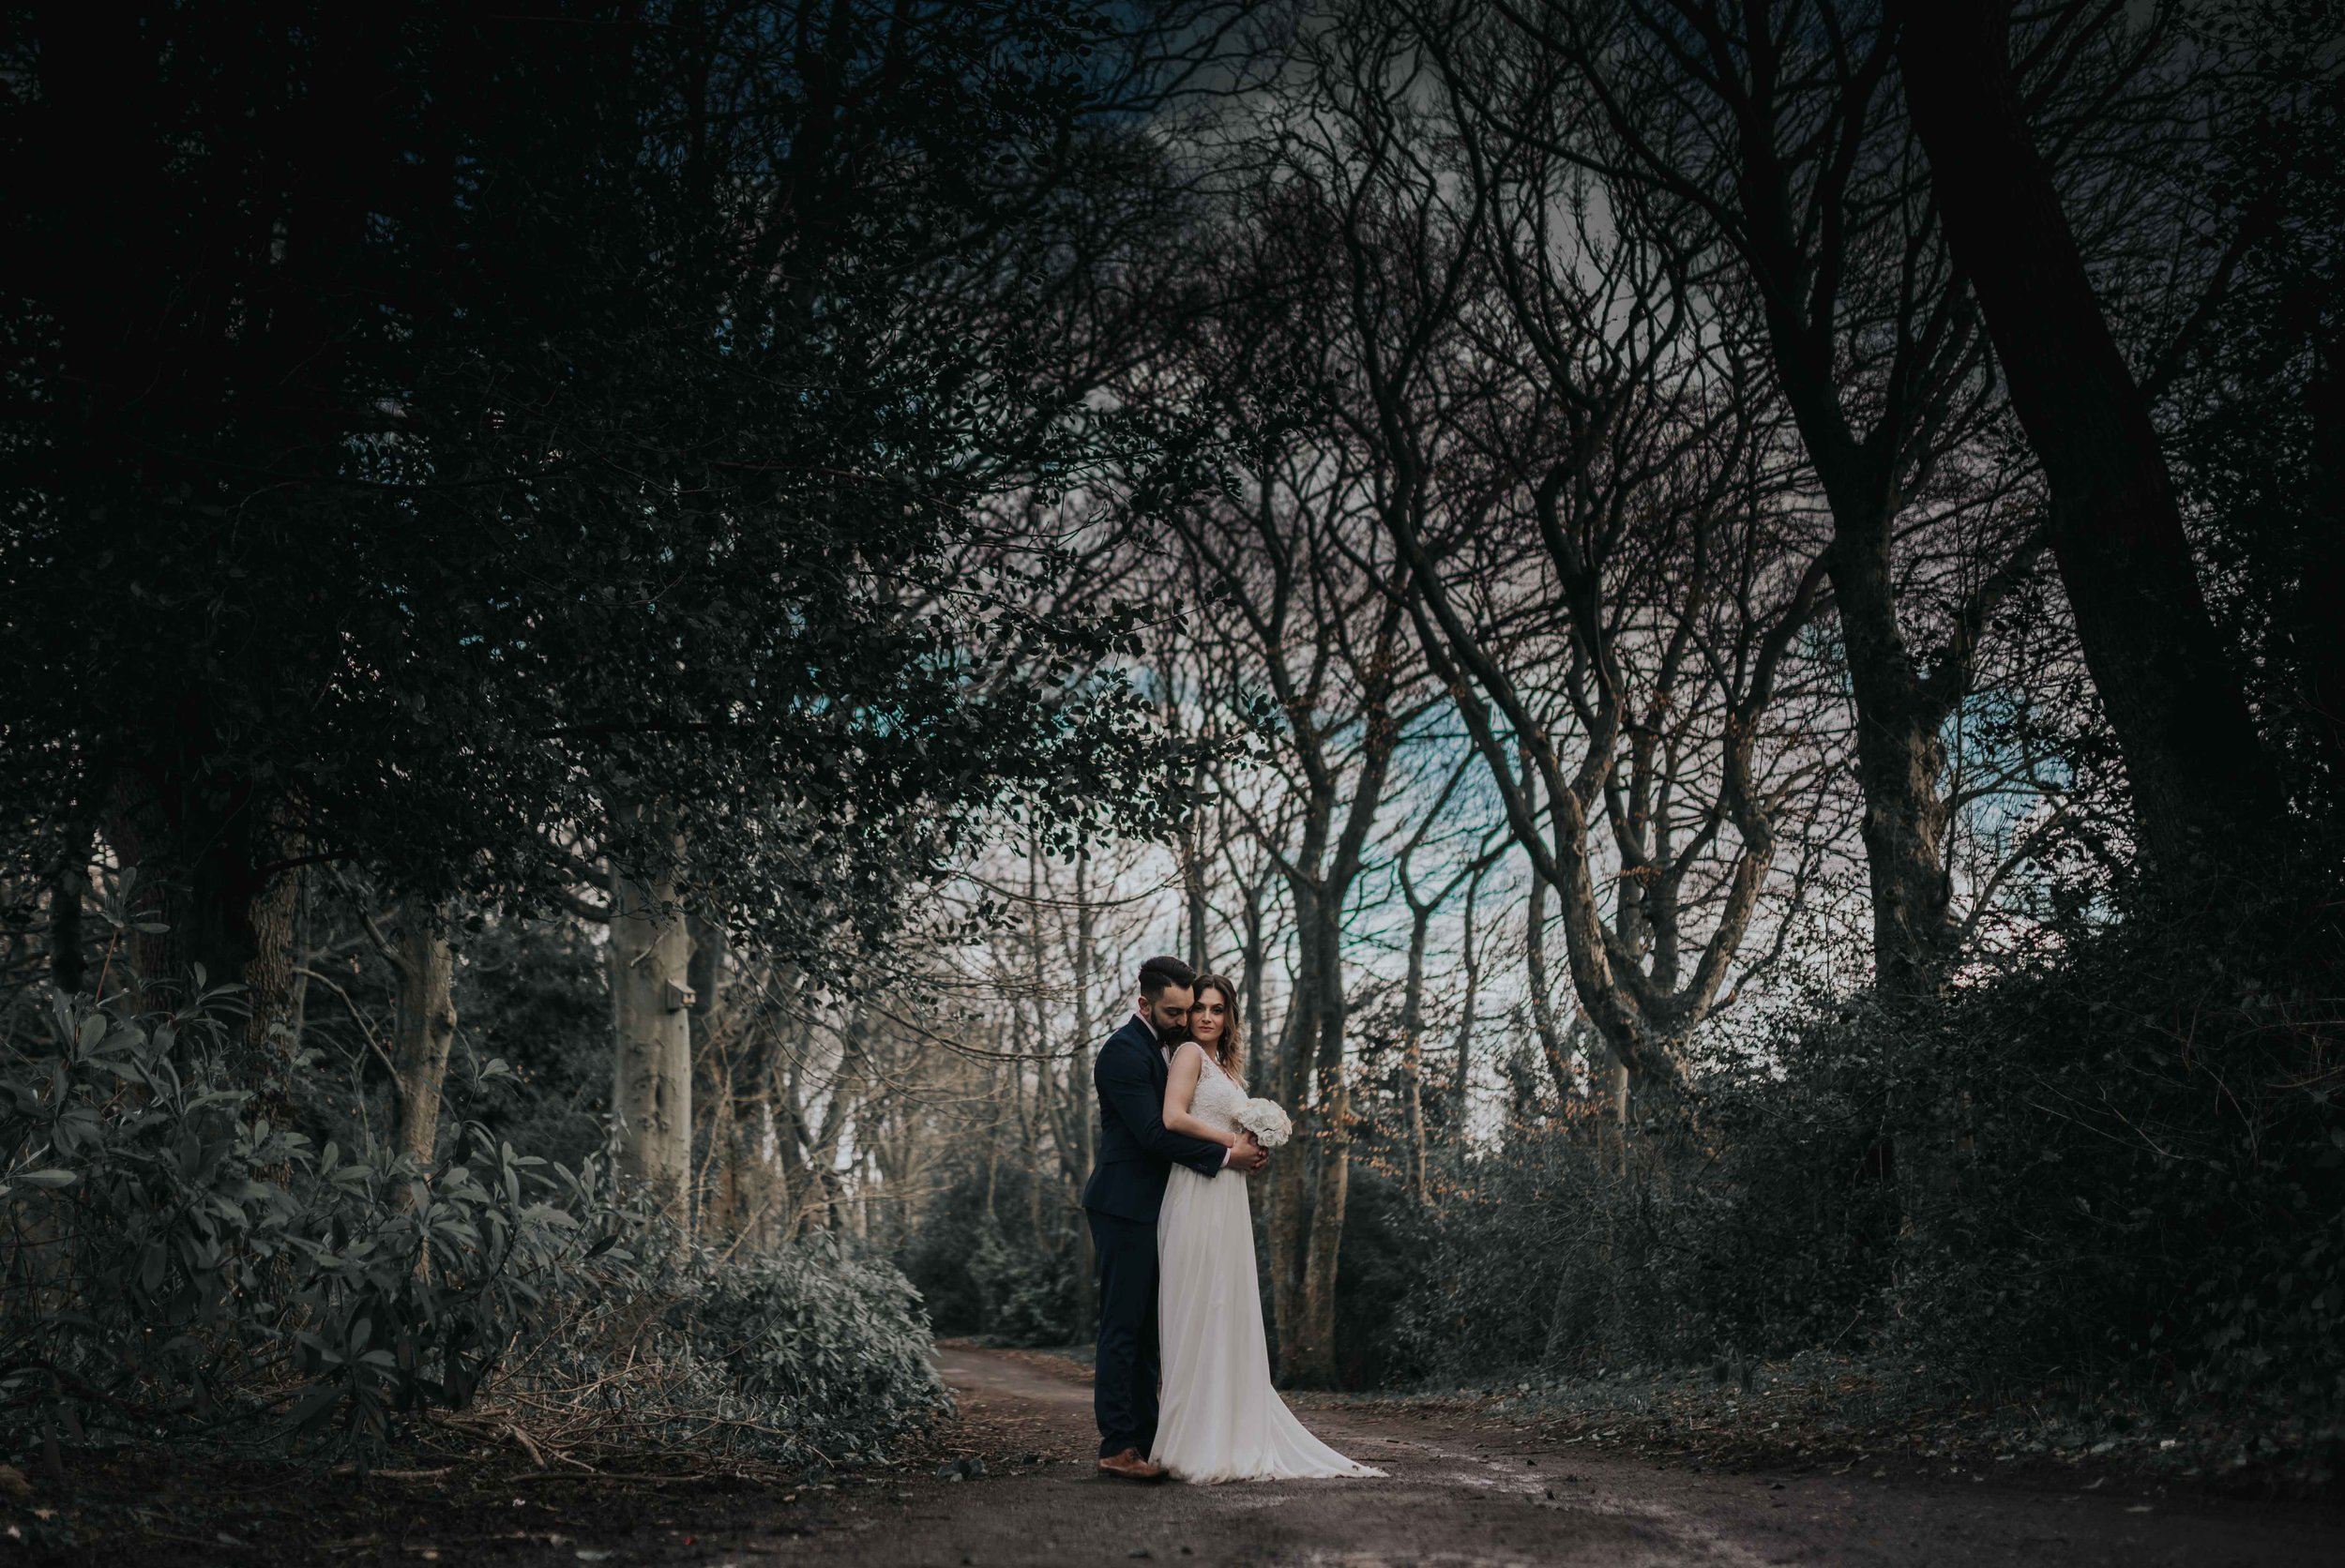 the bride and groom stand central in the image, in the woods surrounding ashfield house